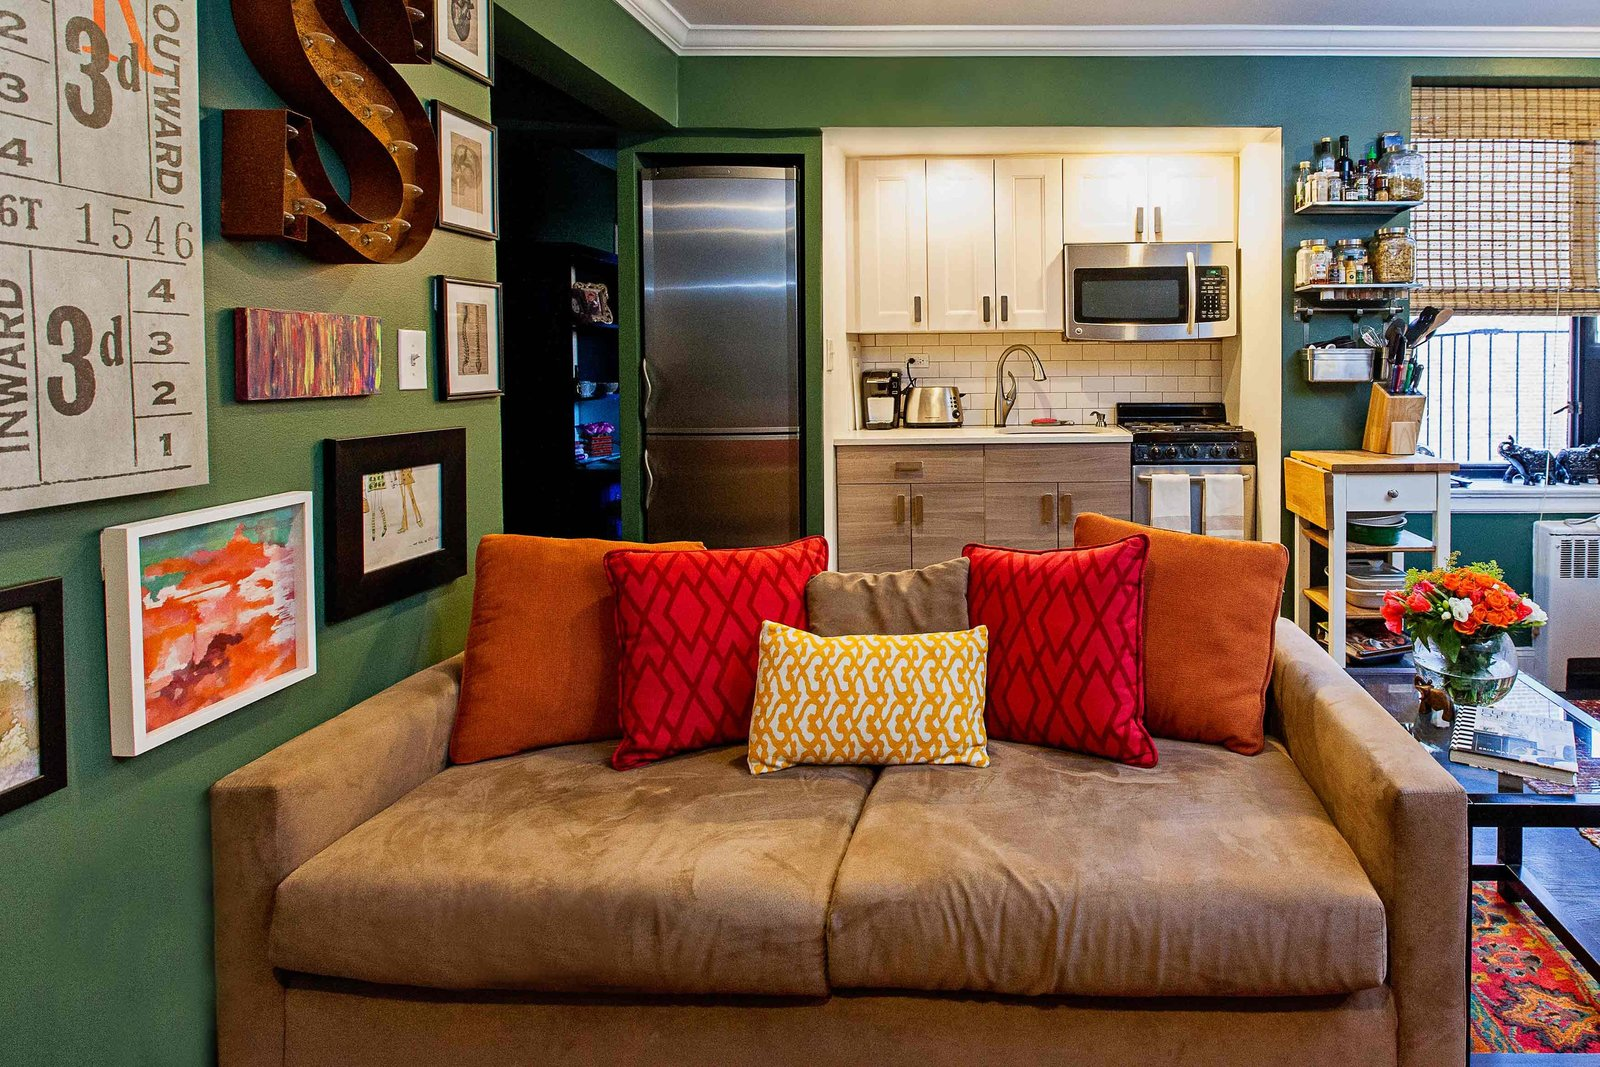 A brown couch in front of a studio apartment kitchen.